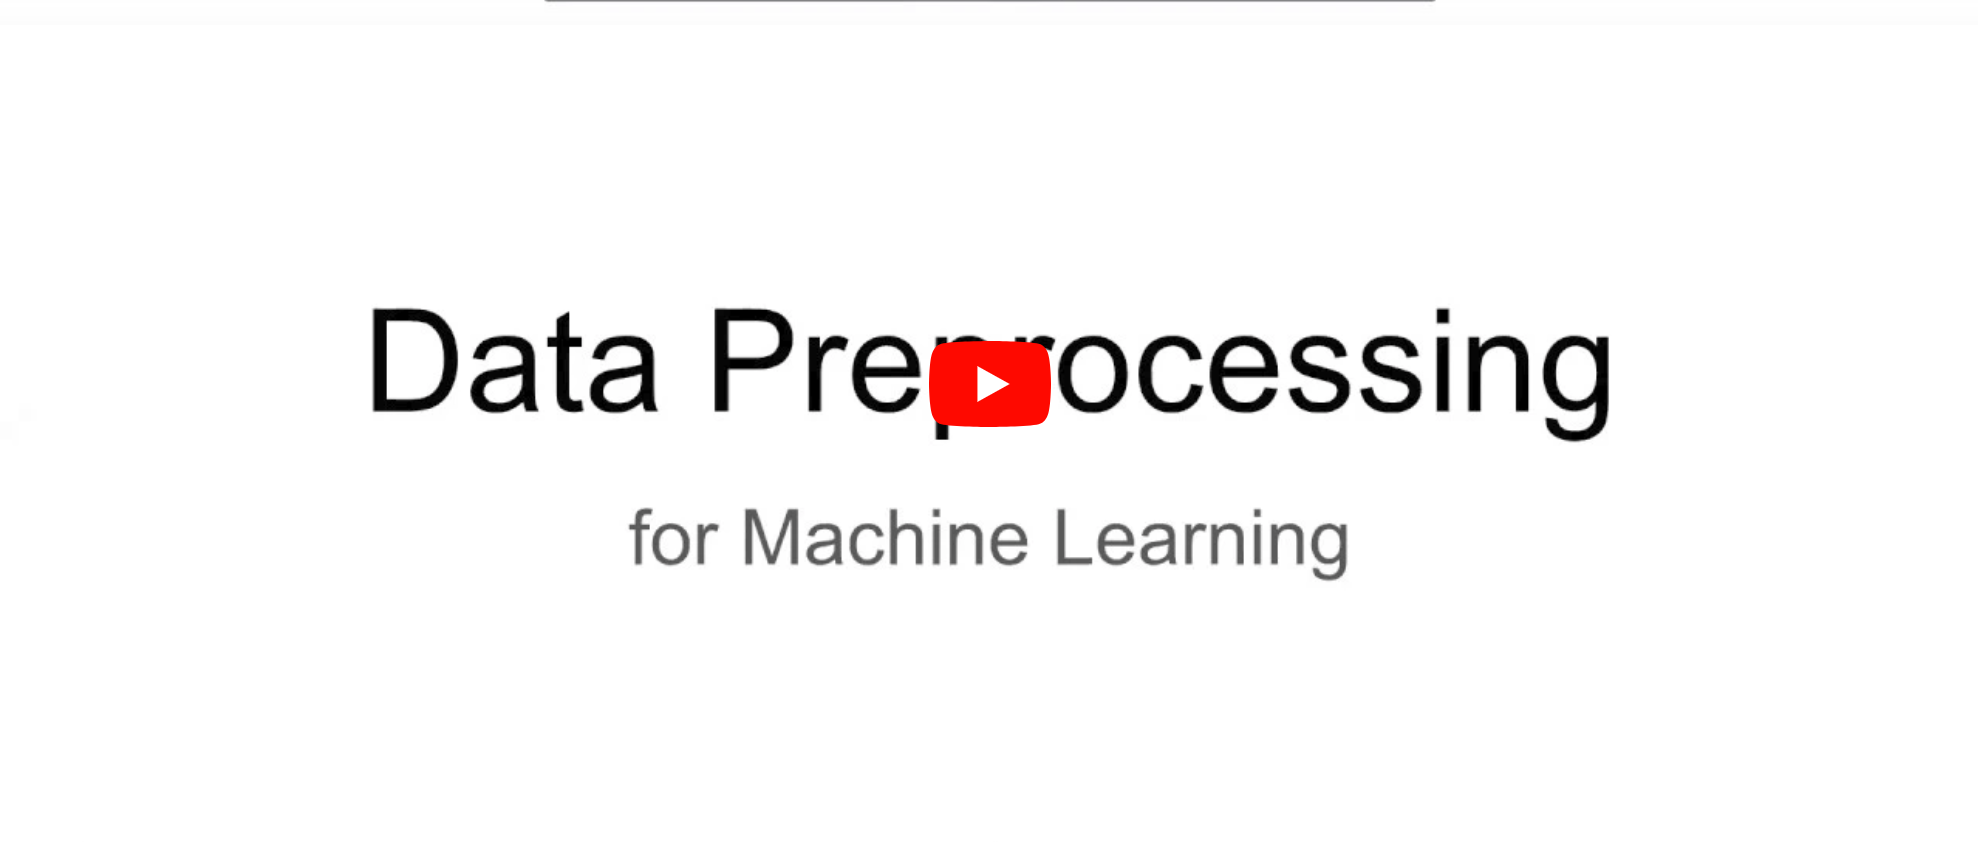 how-does-automl-address-data-pre-processing.png